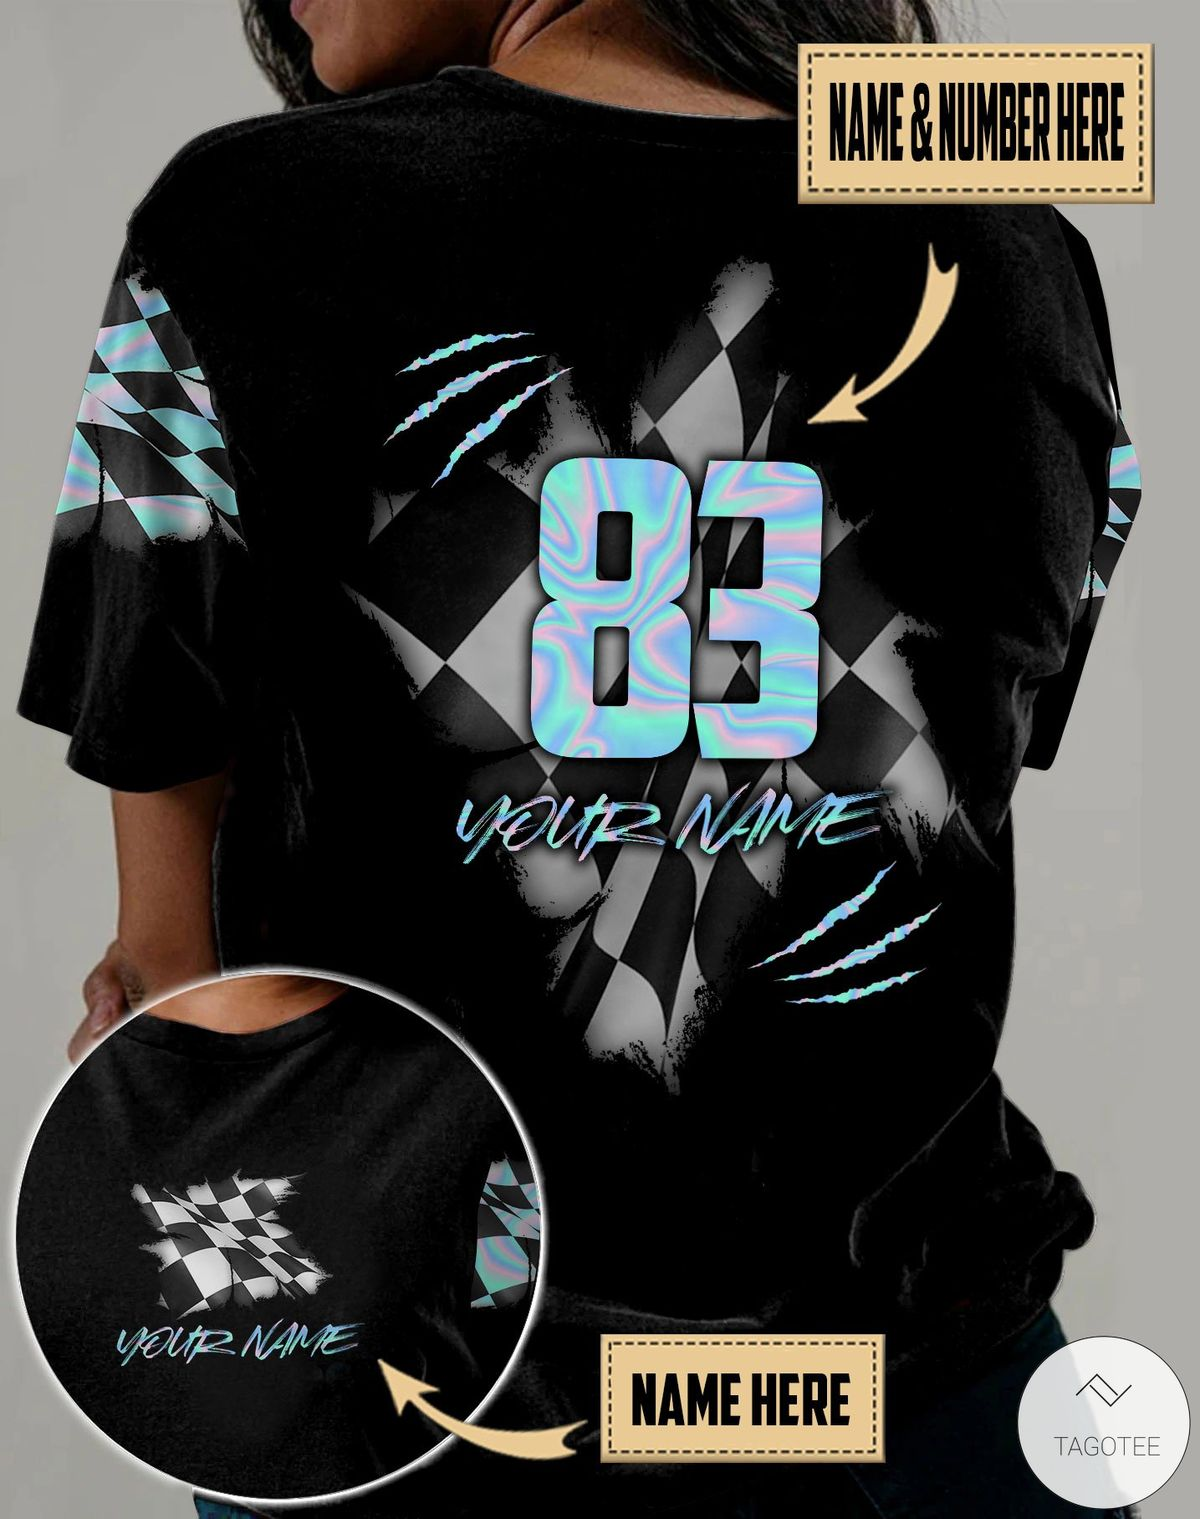 Personalized Name & Number Racing Hologram 3D All Over Print T-shirt, Hoodie